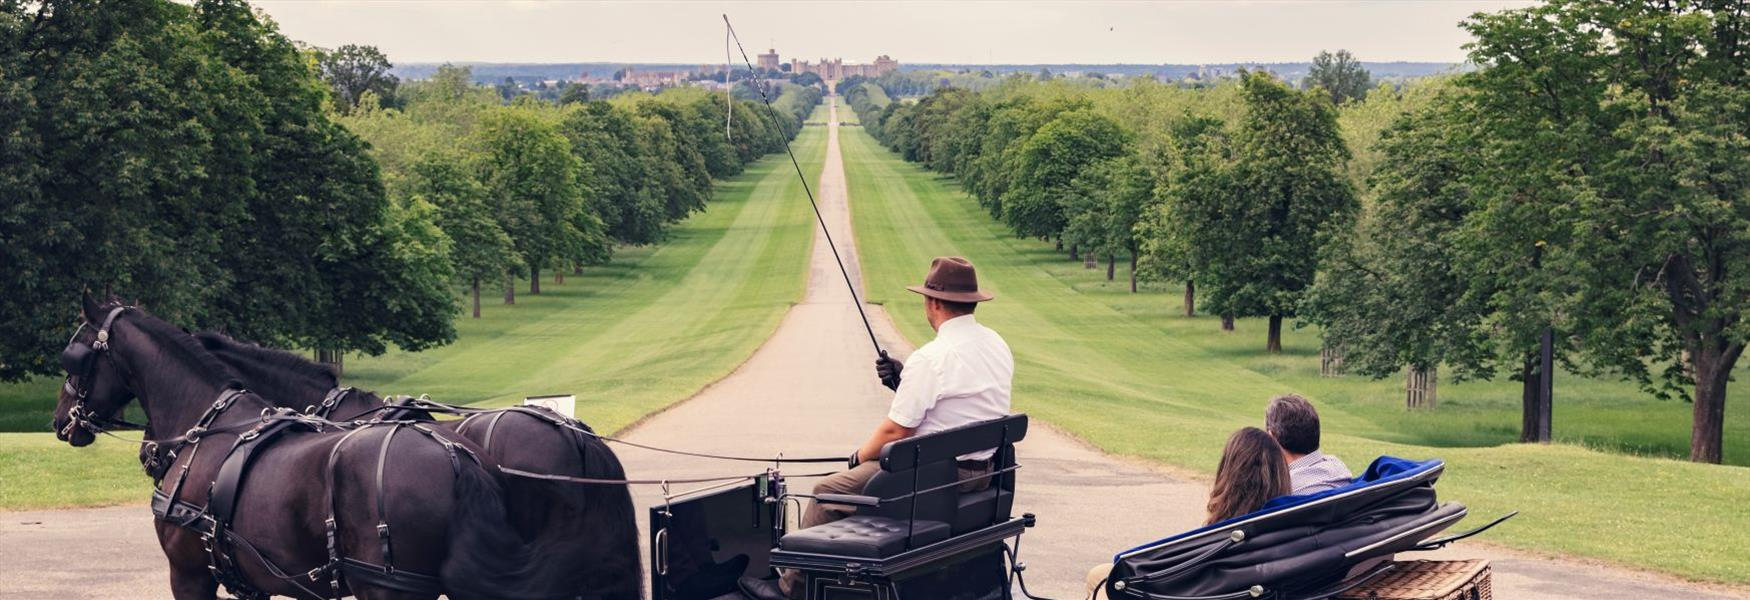 A romantic horse-drawn carriage ride with Windsor Carriages